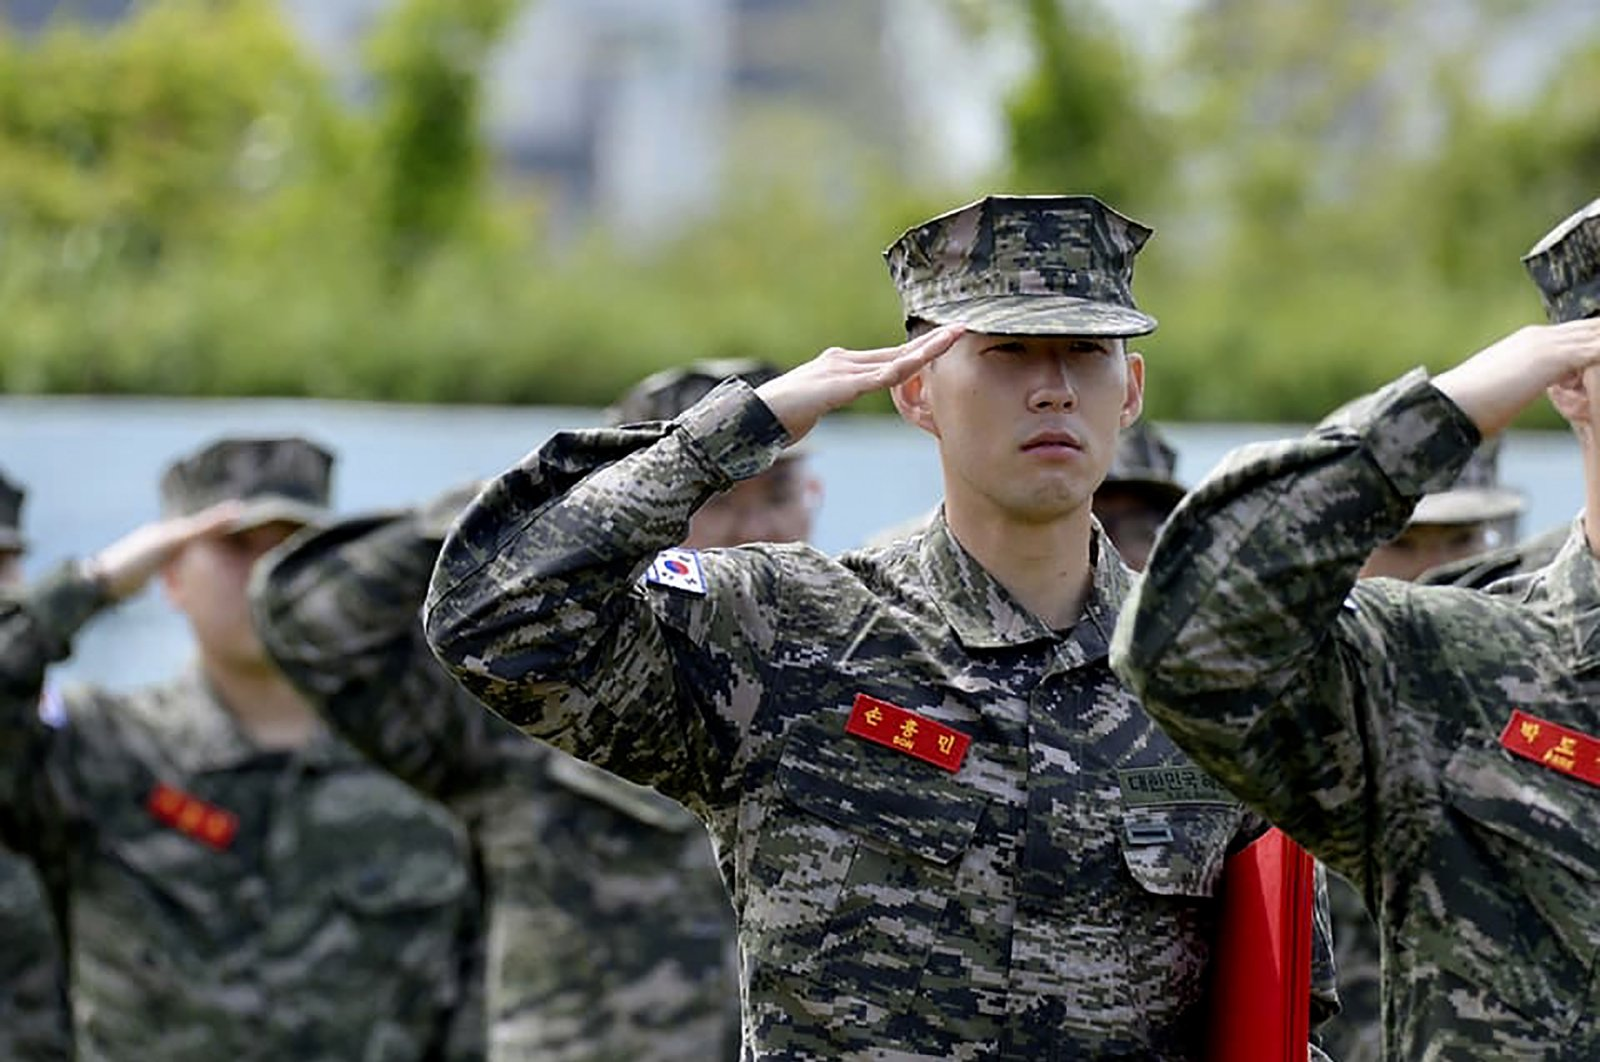 In this photo provided by South Korea Marine Corps' Facebook, Tottenham Hotspur forward Son Heung-min salutes during a basic military training completion ceremony at a Marine Corps boot camp in Seogwipo on Jeju Island, South Korea, Friday, May 8, 2020. (South Korea Marine Corps' Facebook via AP)